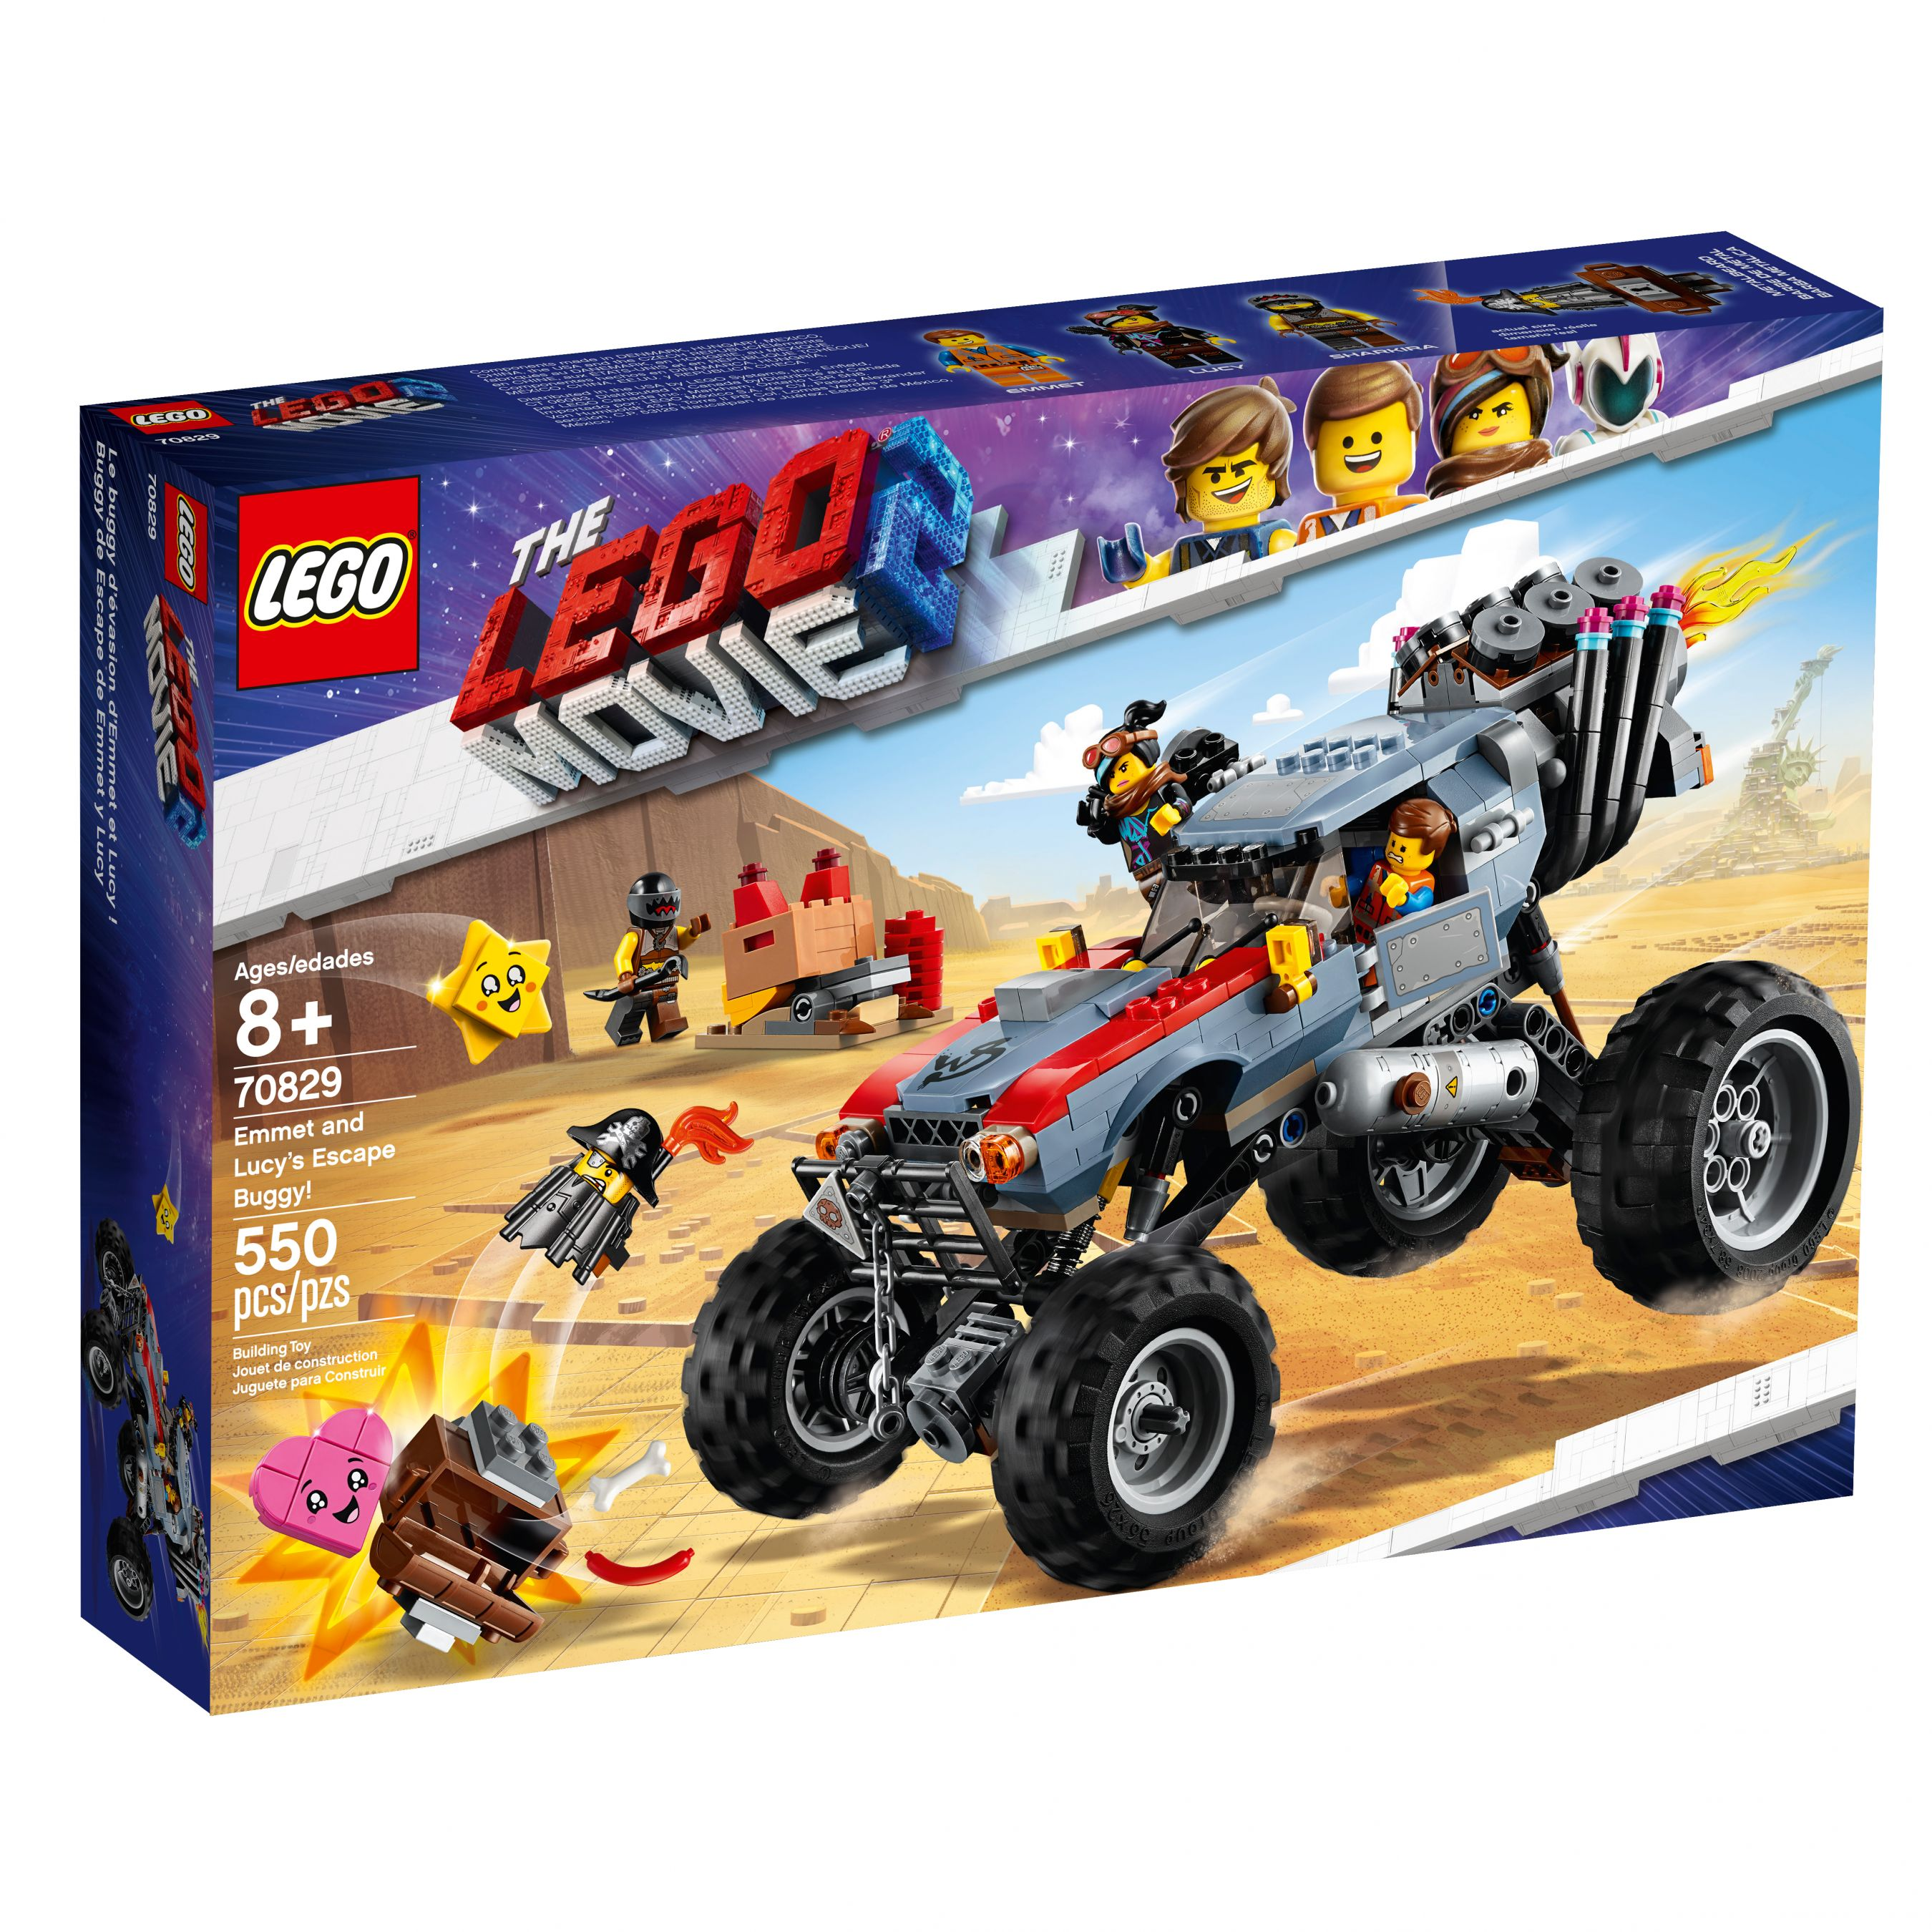 LEGO The LEGO Movie 2 70829 Emmets und Lucys Flucht-Buggy! LEGO_70829_alt1.jpg